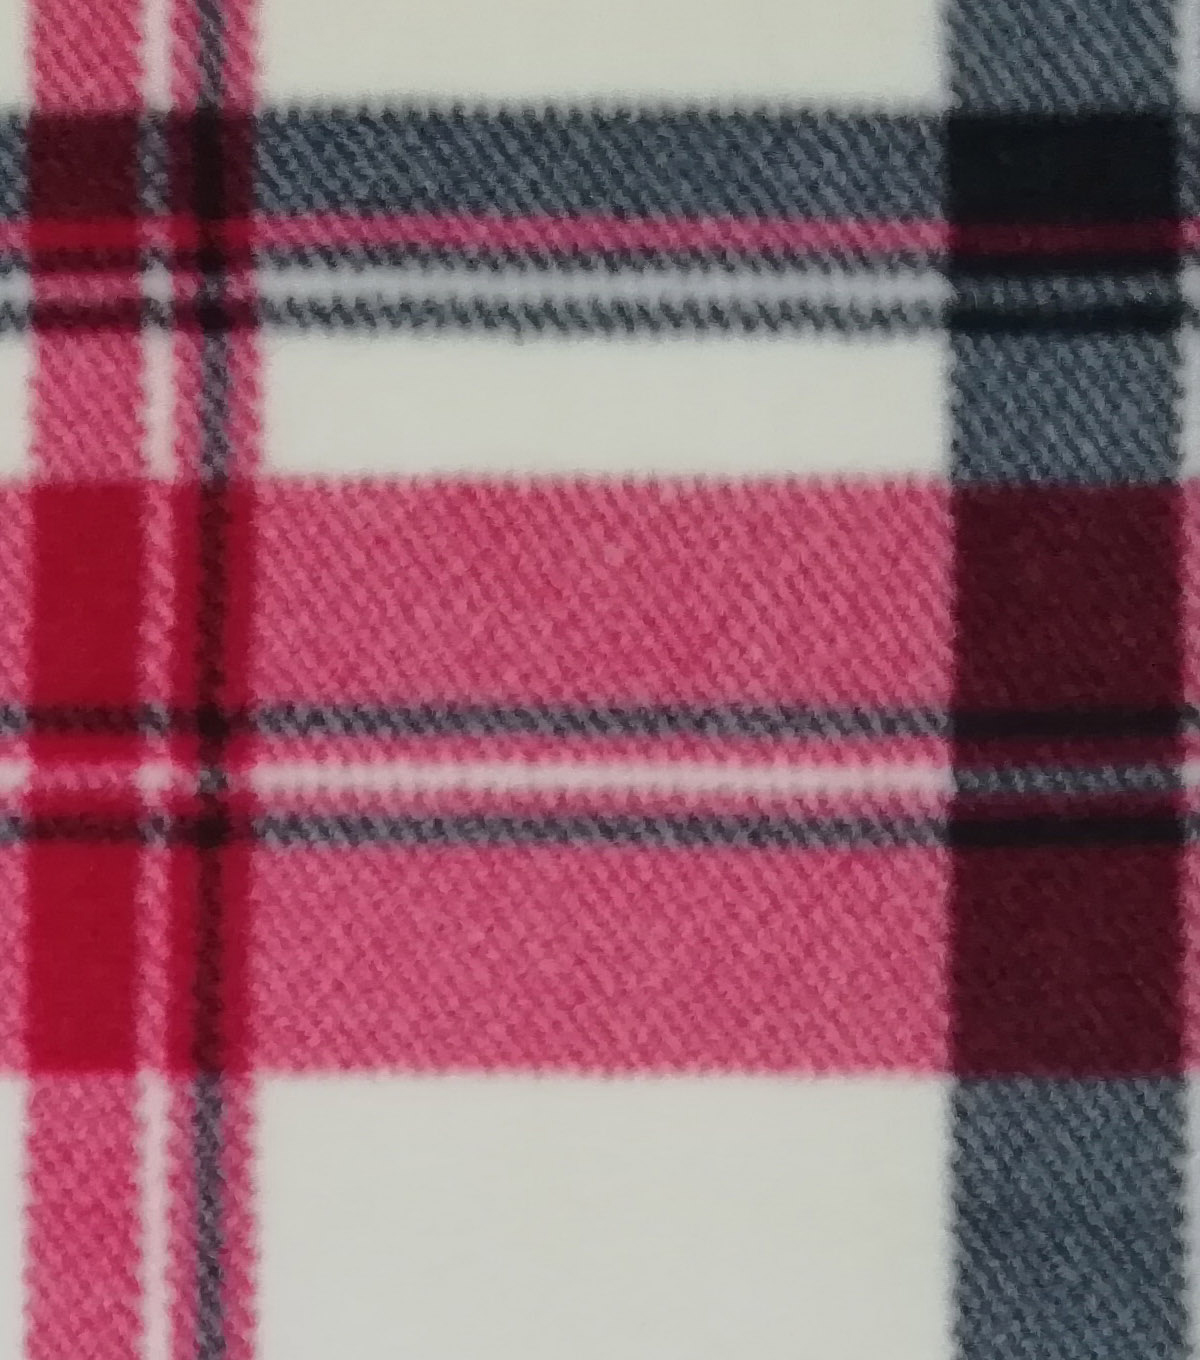 Luxe Fleece Fabric -Cream Red Black Plaid